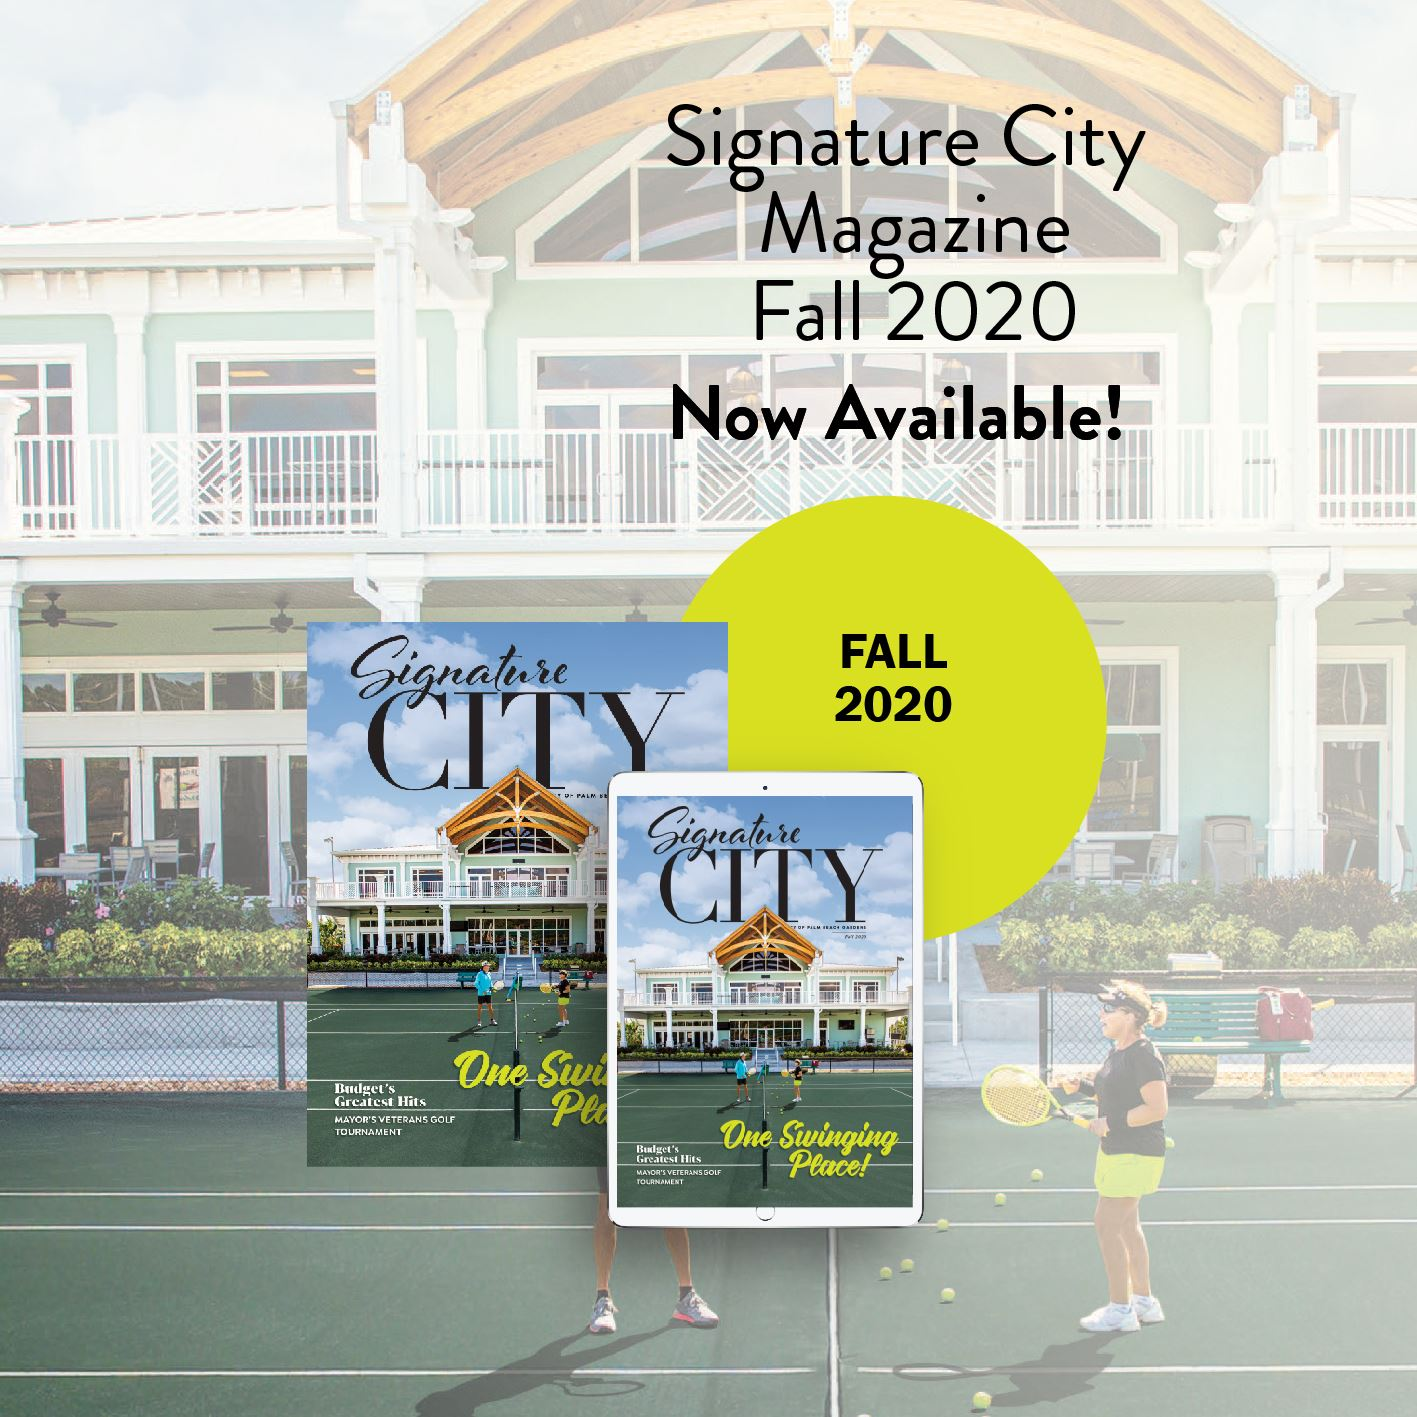 Signature City magazine fall 2020 issue available.